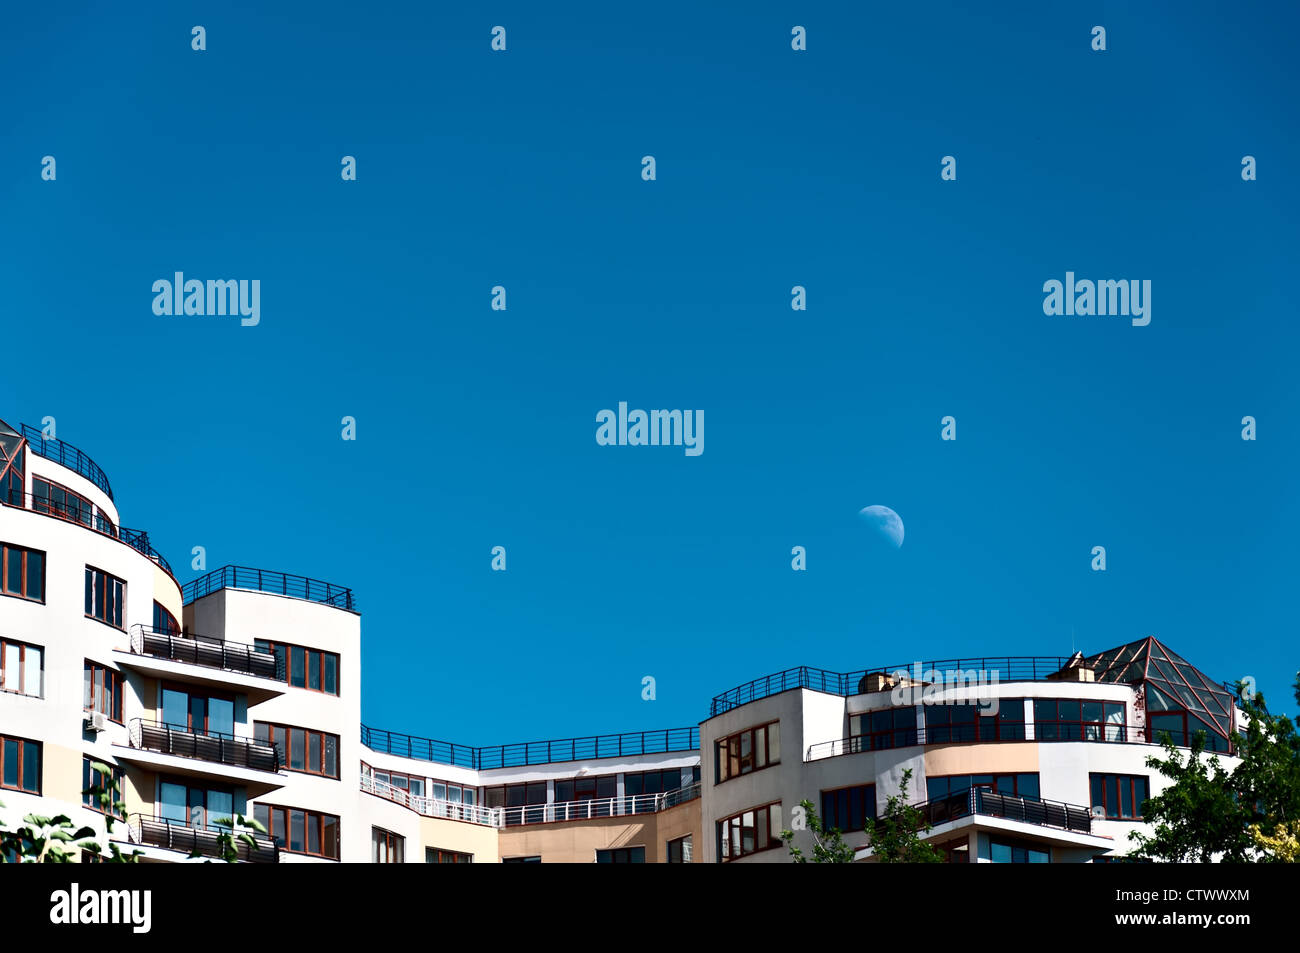 Modern house on a background of blue sky and the moon - Stock Image